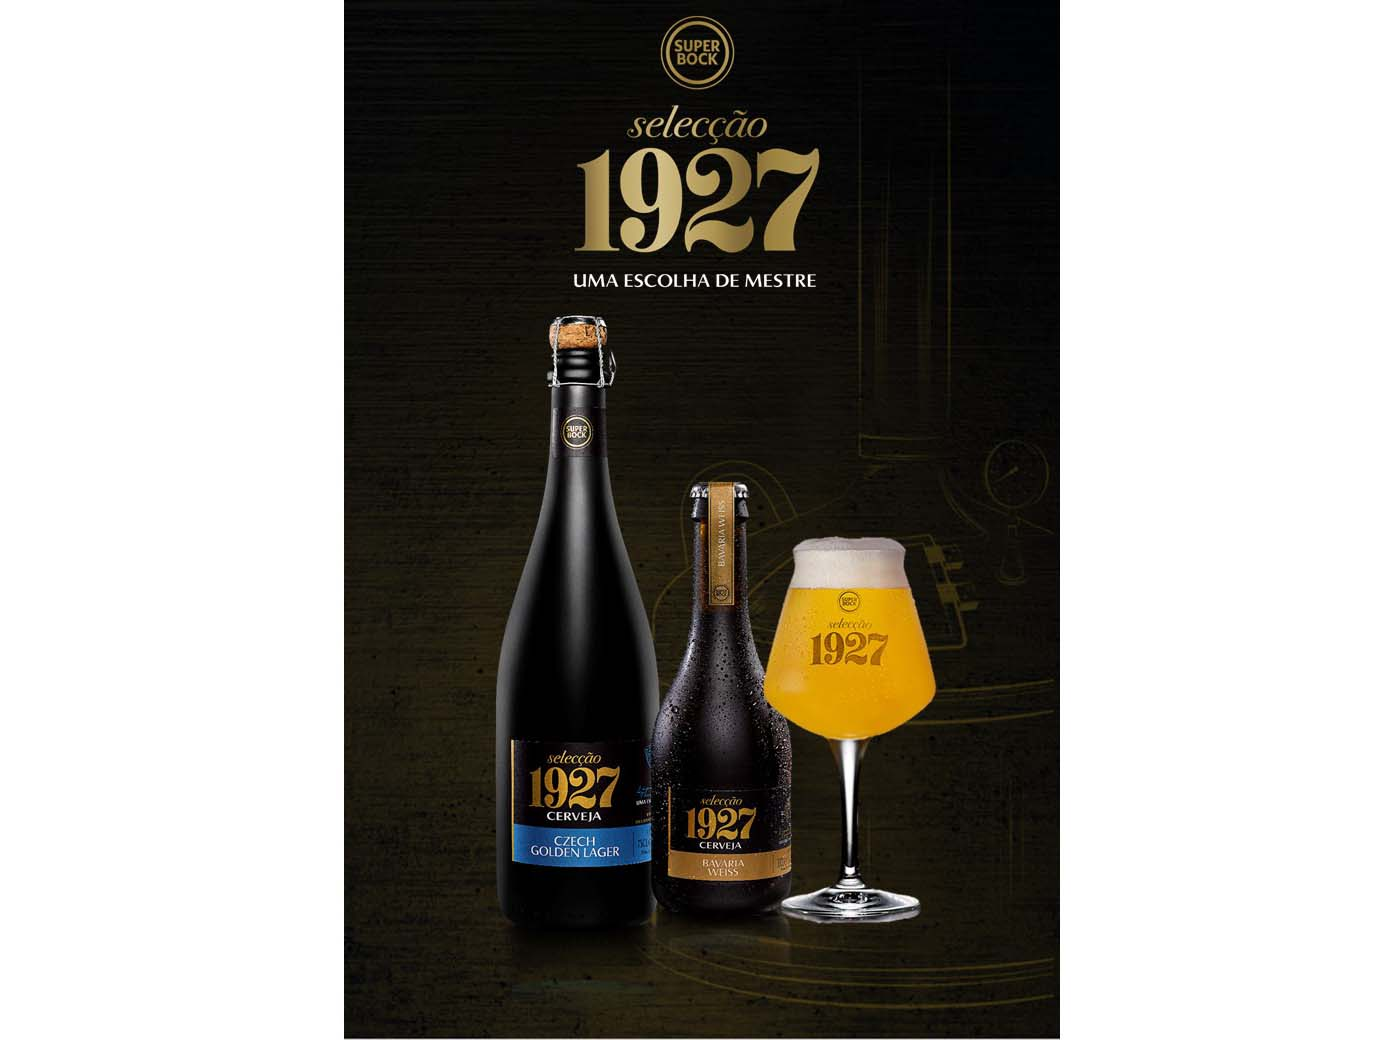 Cervejas Super Bock Selecção 1927 premiadas nos World Beer Awards